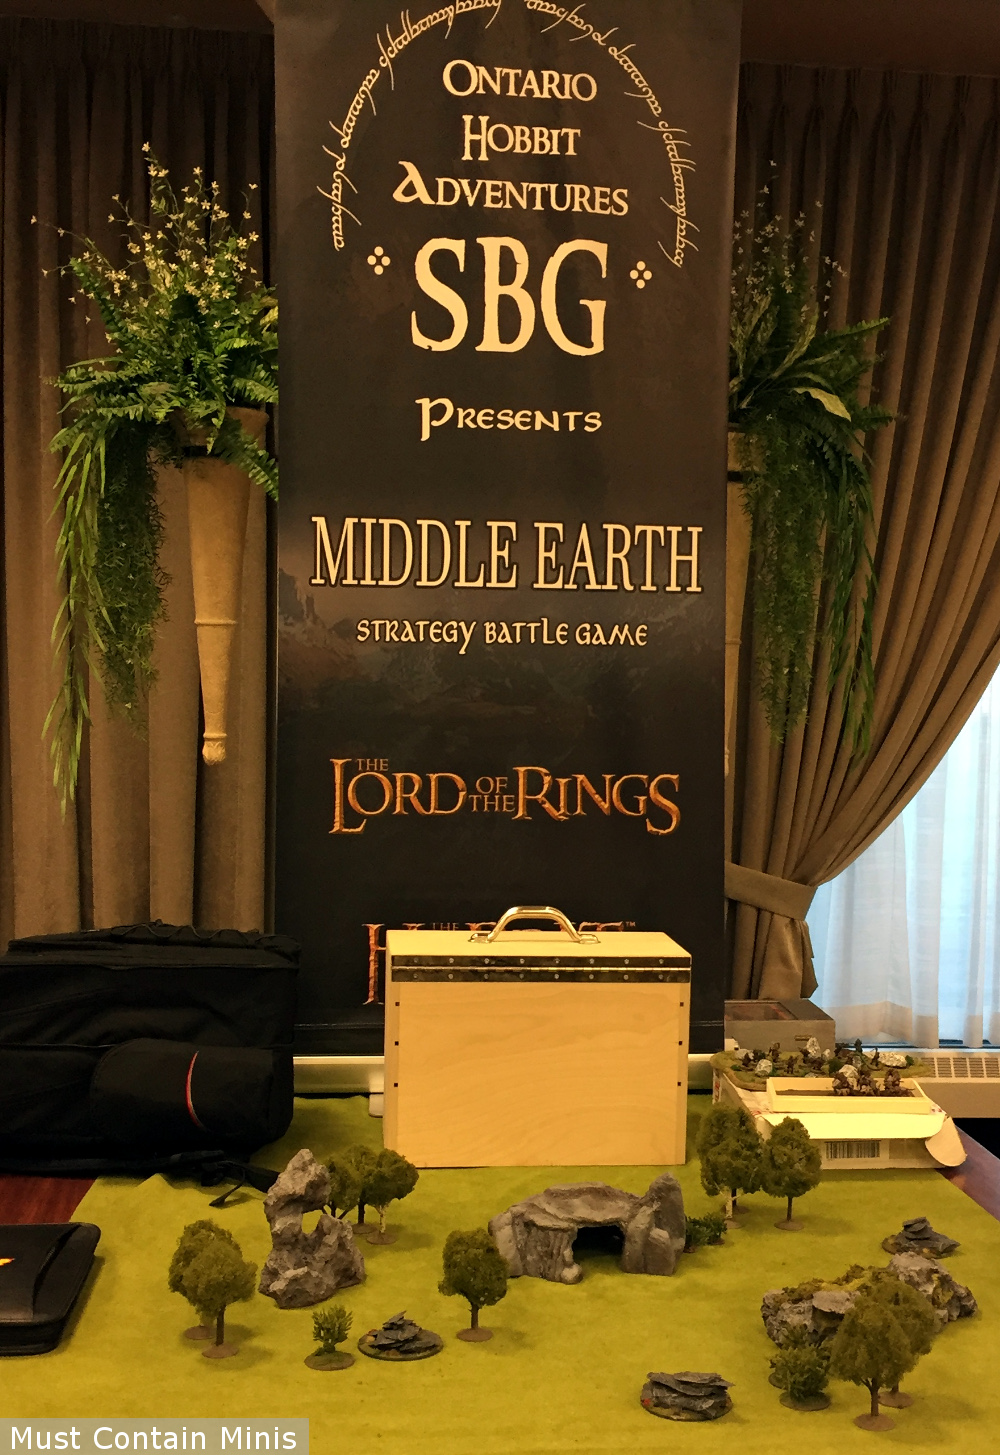 Hobbit Battle Boards – Ontario Hobbit Adventures (at Hotlead 2018)